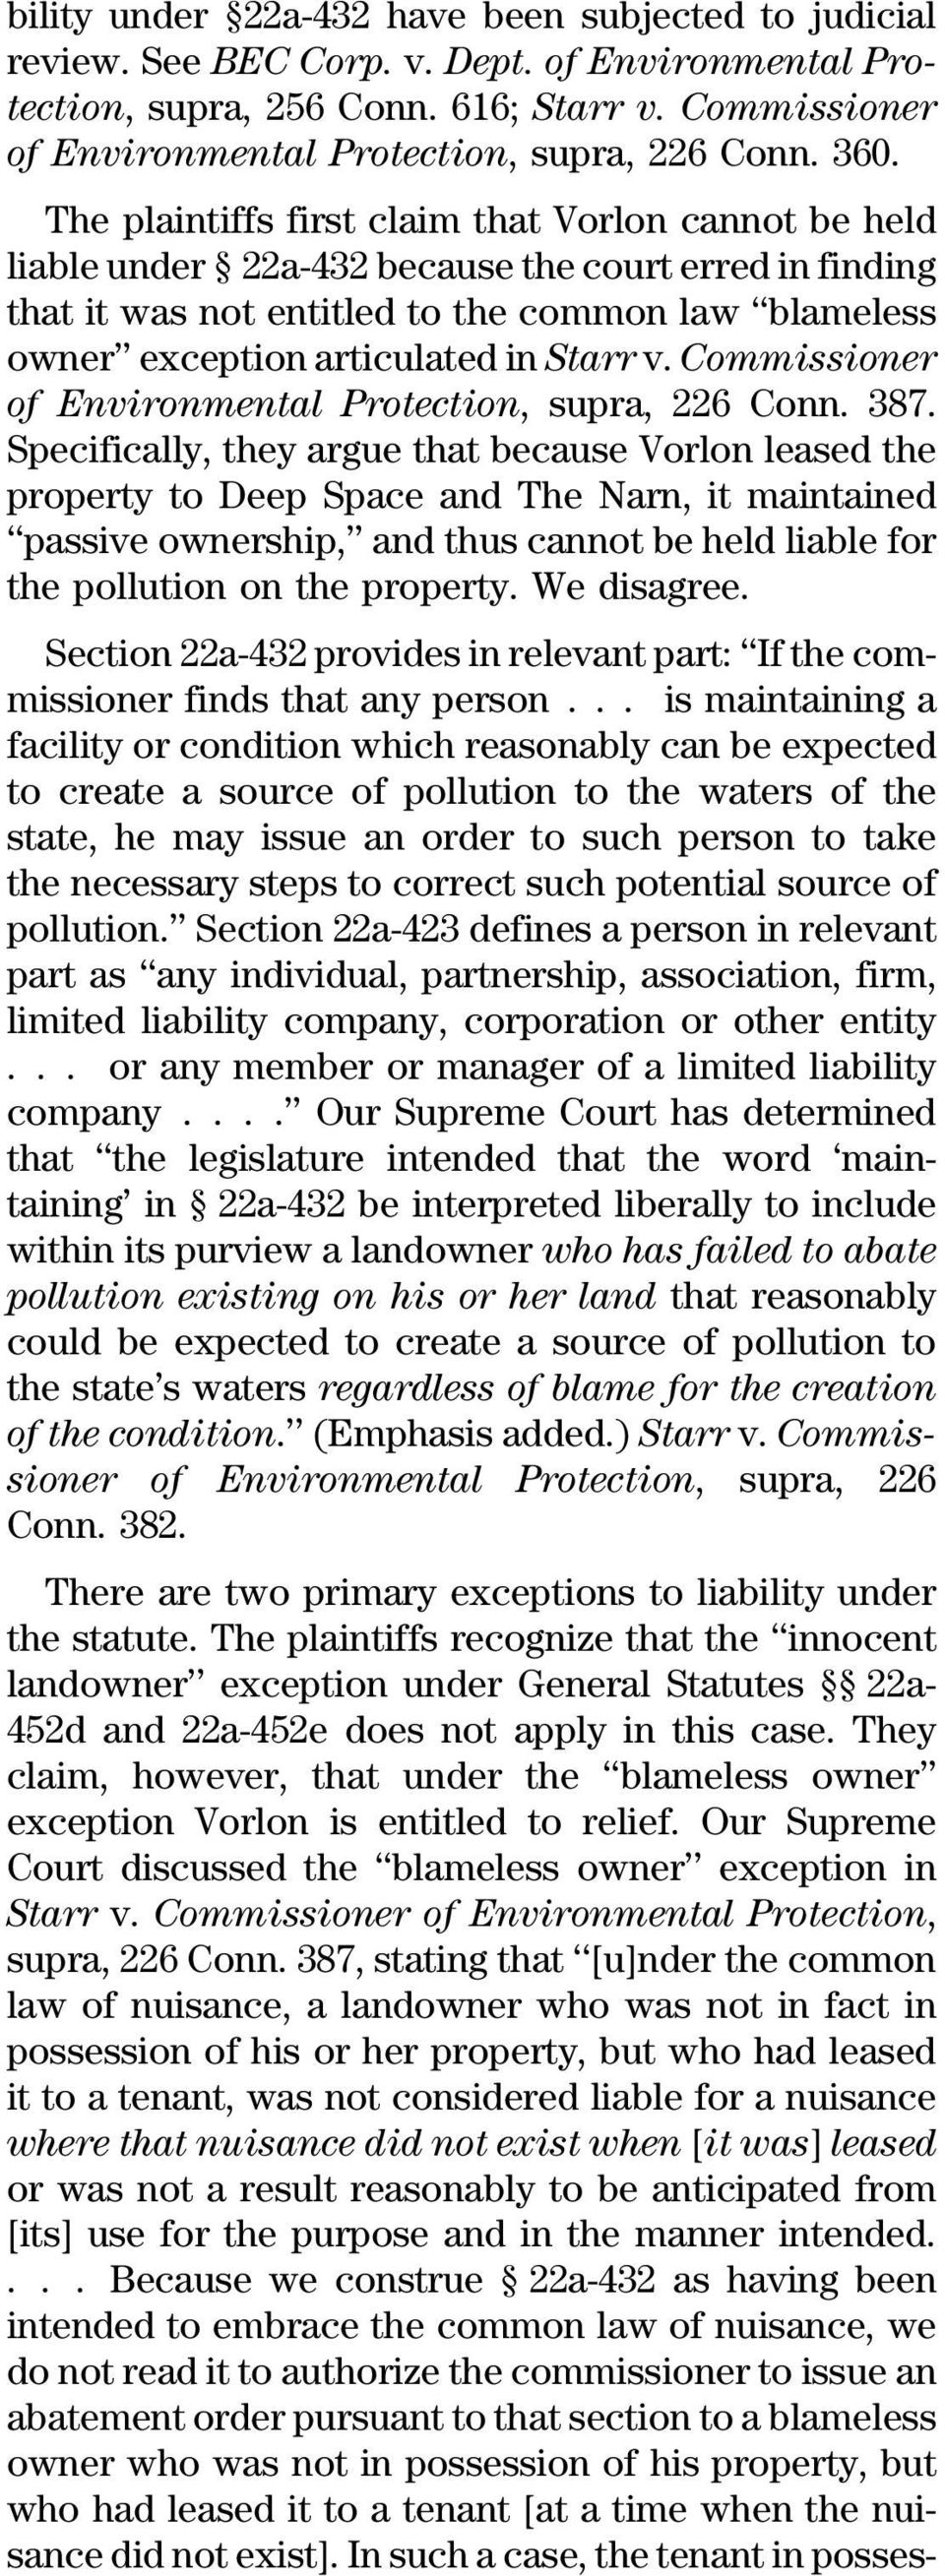 The plaintiffs first claim that Vorlon cannot be held liable under 22a-432 because the court erred in finding that it was not entitled to the common law blameless owner exception articulated in Starr